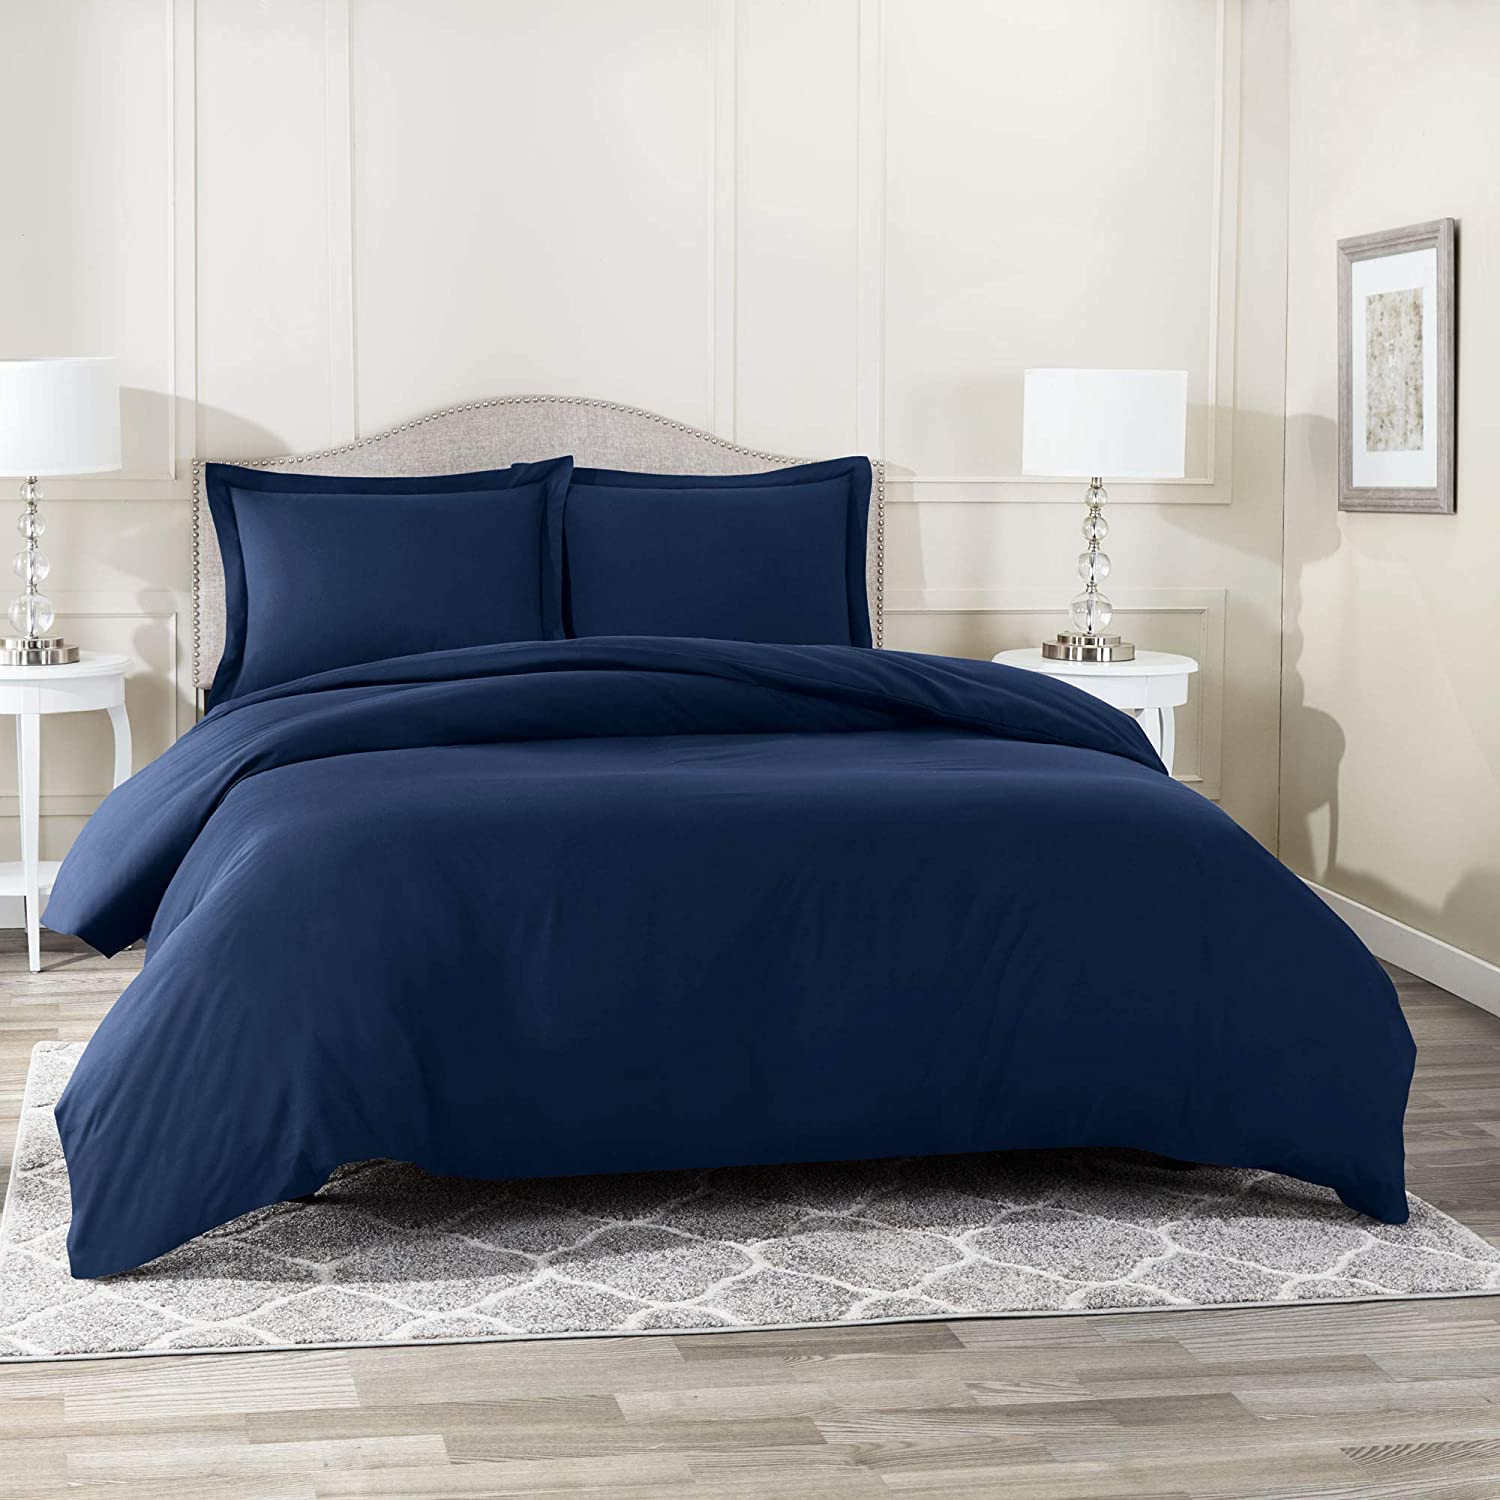 """Nestl Bedding Duvet Cover 3 Piece Set – Ultra Soft Double Brushed Microfiber Hotel Collection – Comforter Cover with Button Closure and 2 Pillow Shams, Navy - California King 98""""x104"""""""